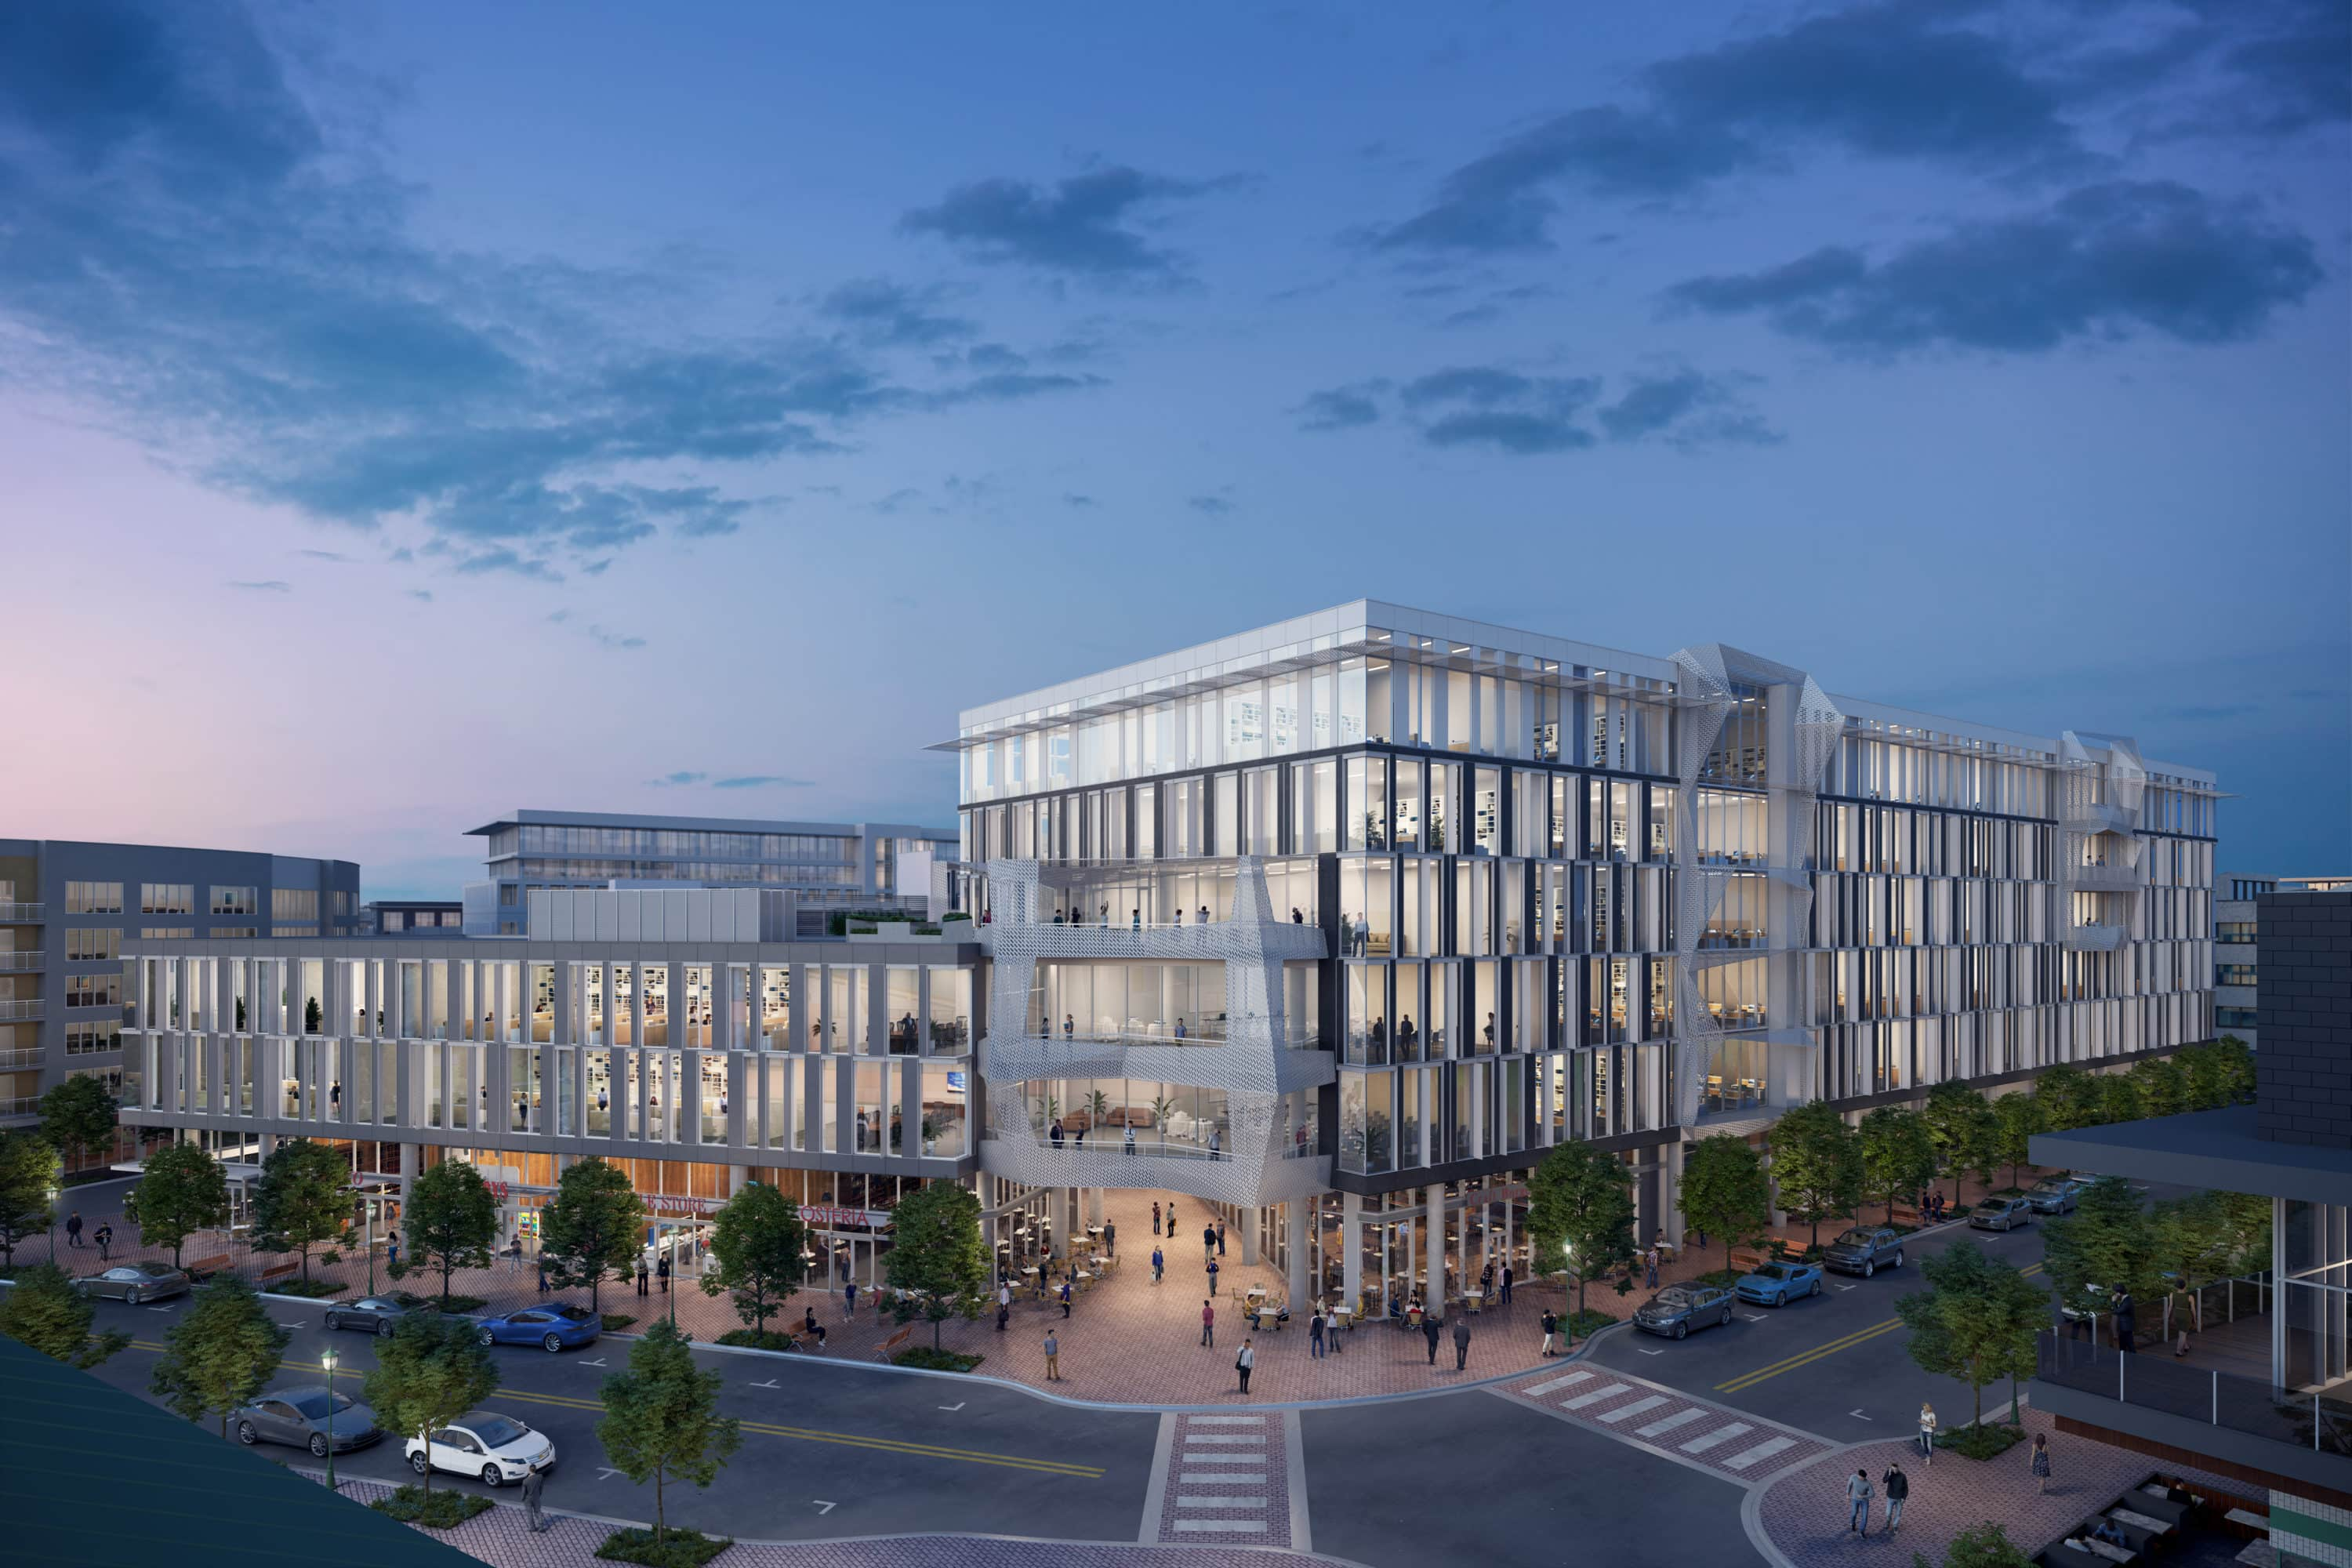 Exterior Rendering of Mueller Business District by BOGZA